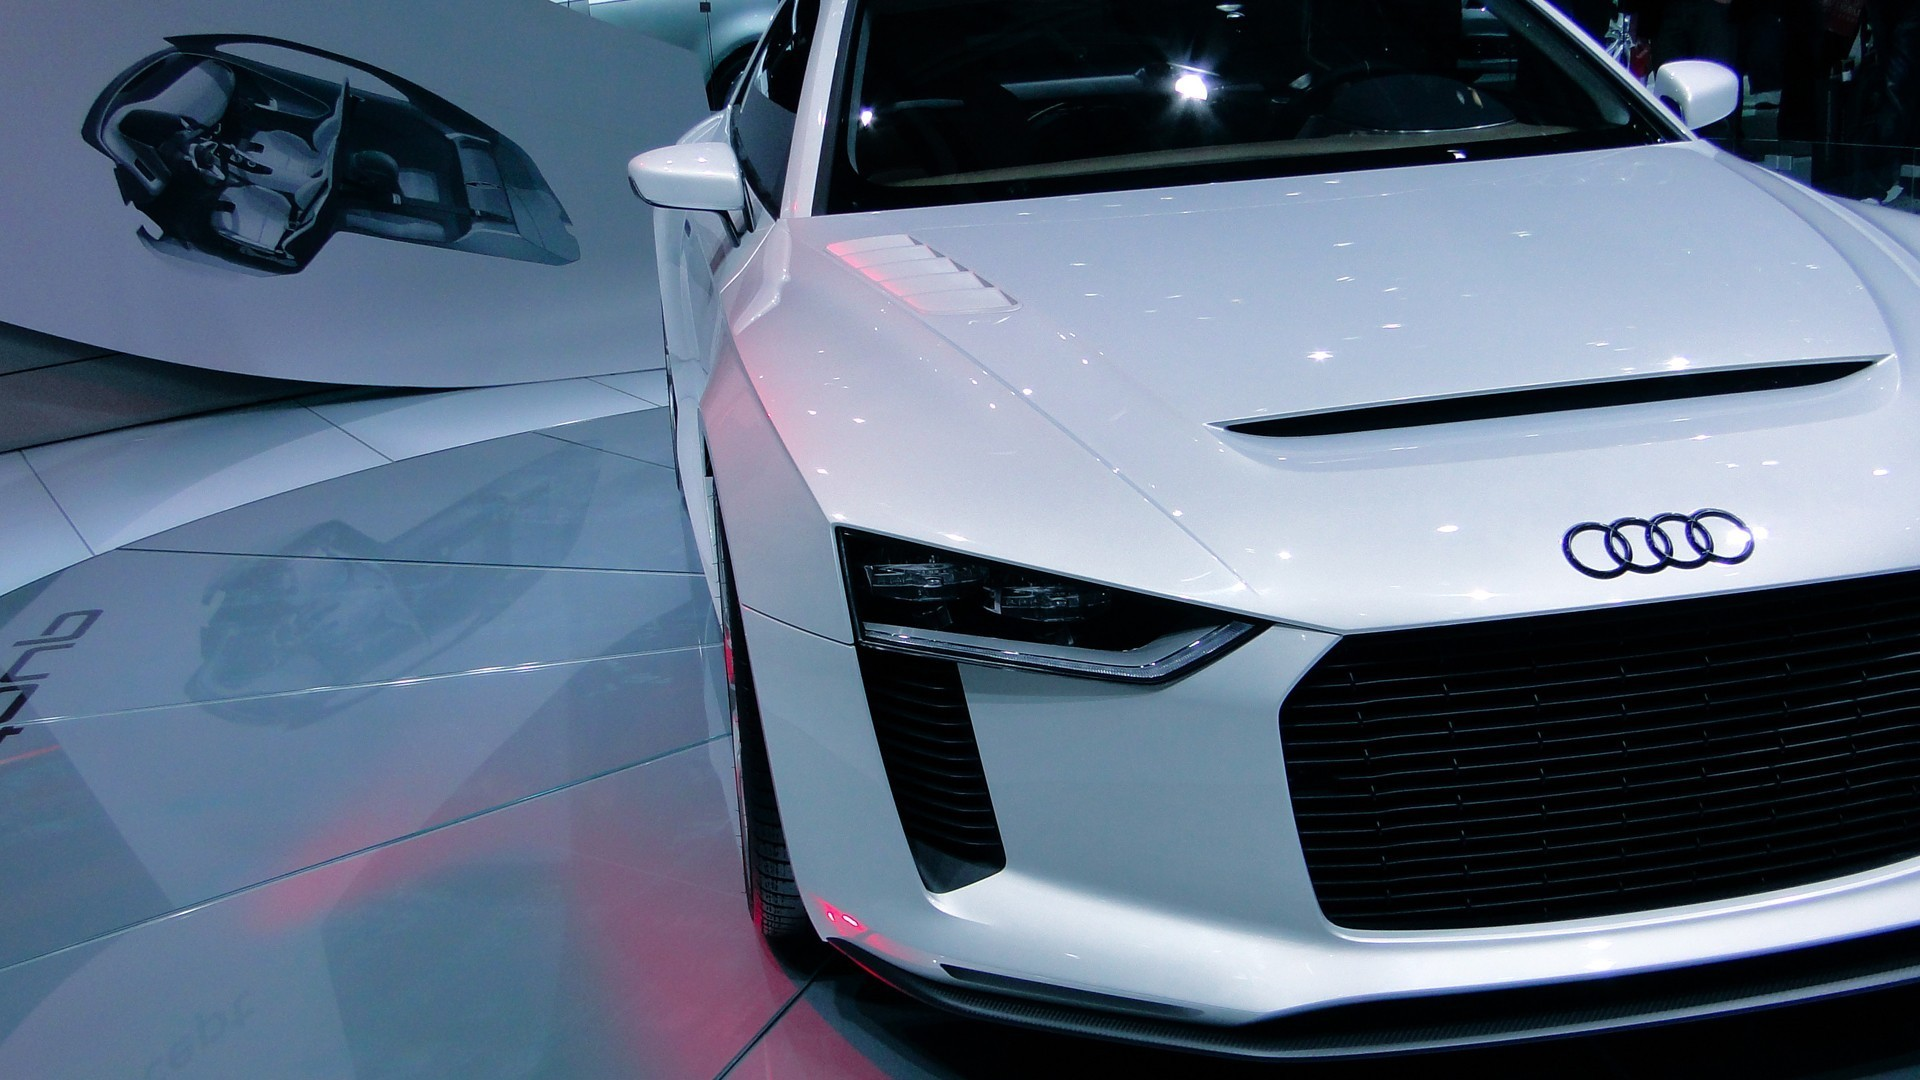 photos news model three new introduce once will weeks audi spy every in a automobiles